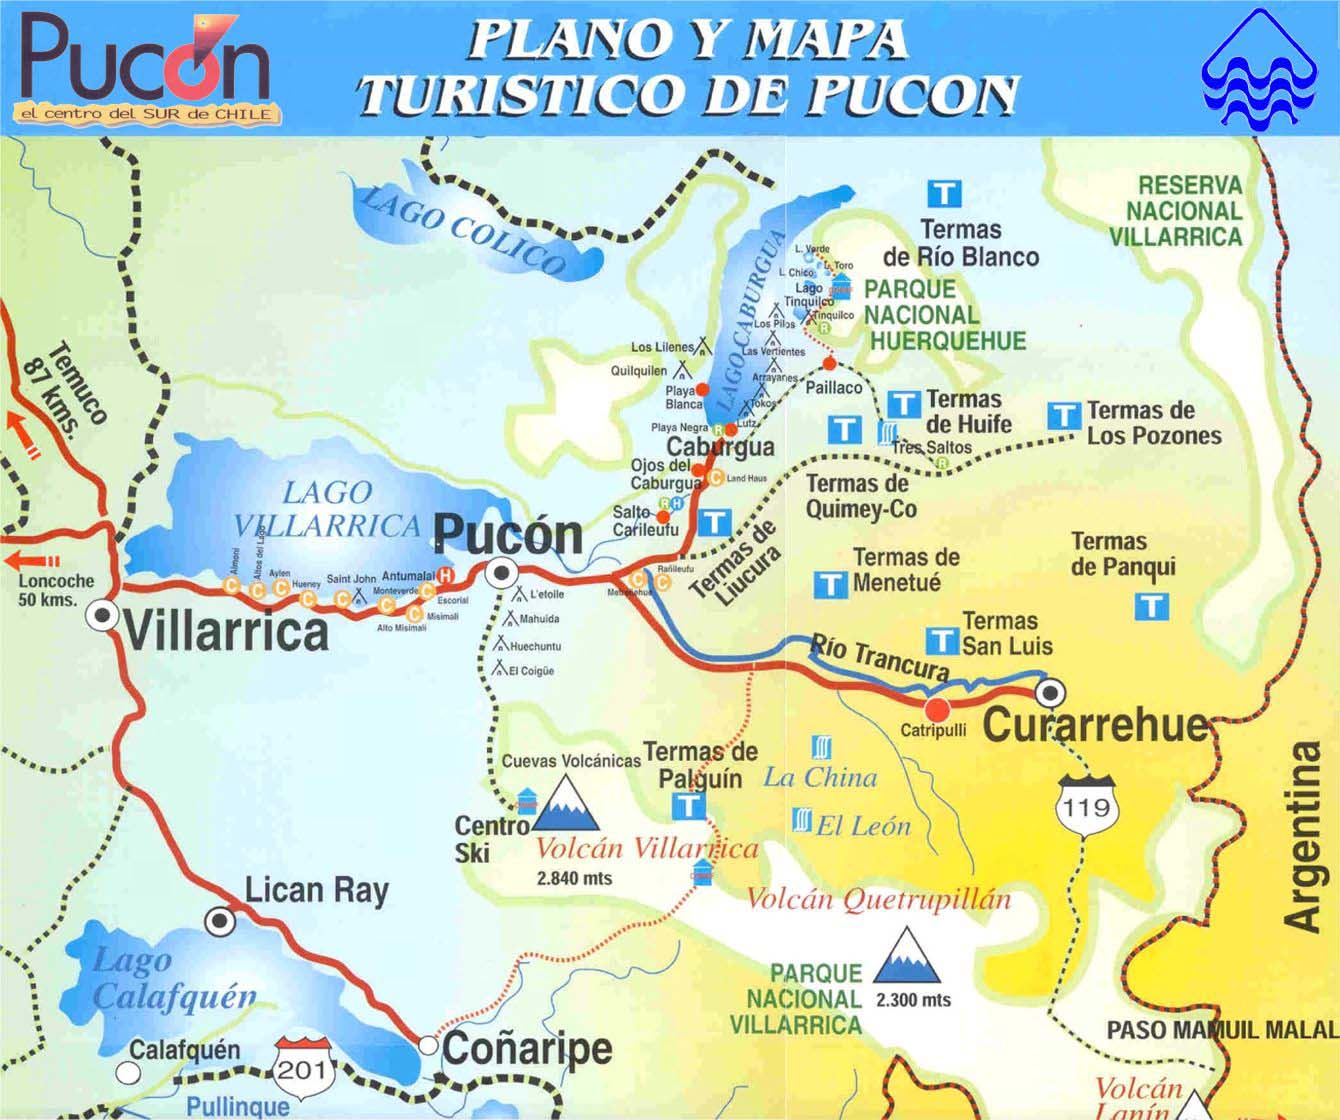 map of pucon chile Maps Of Towns And Cities In Southern Chile map of pucon chile